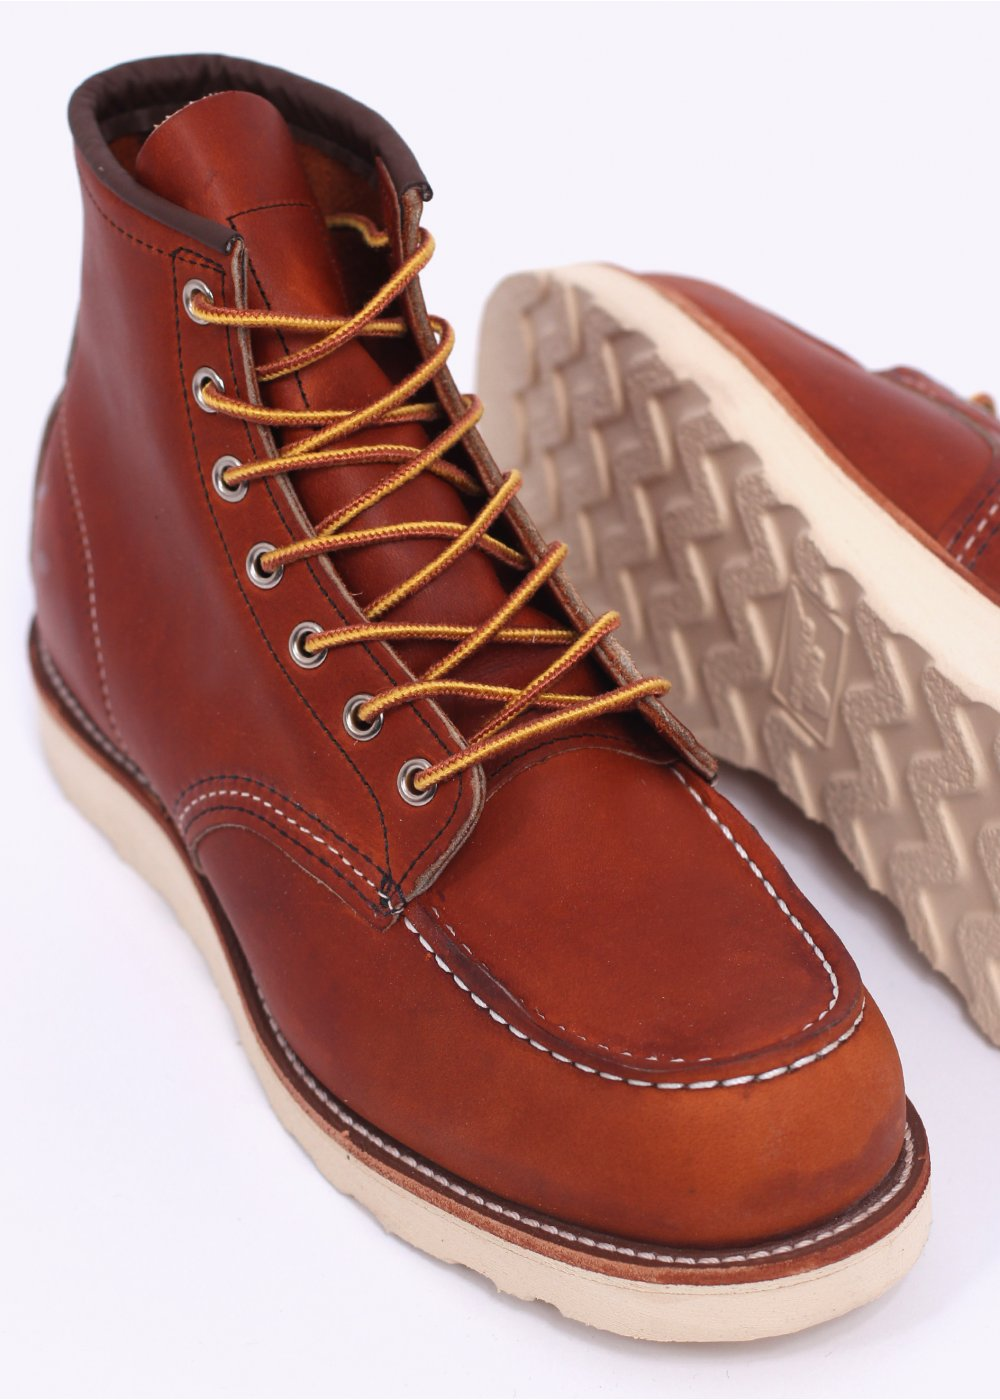 Red Wing 875 Heritage Work 6 Moc Toe Leather Boots Oro